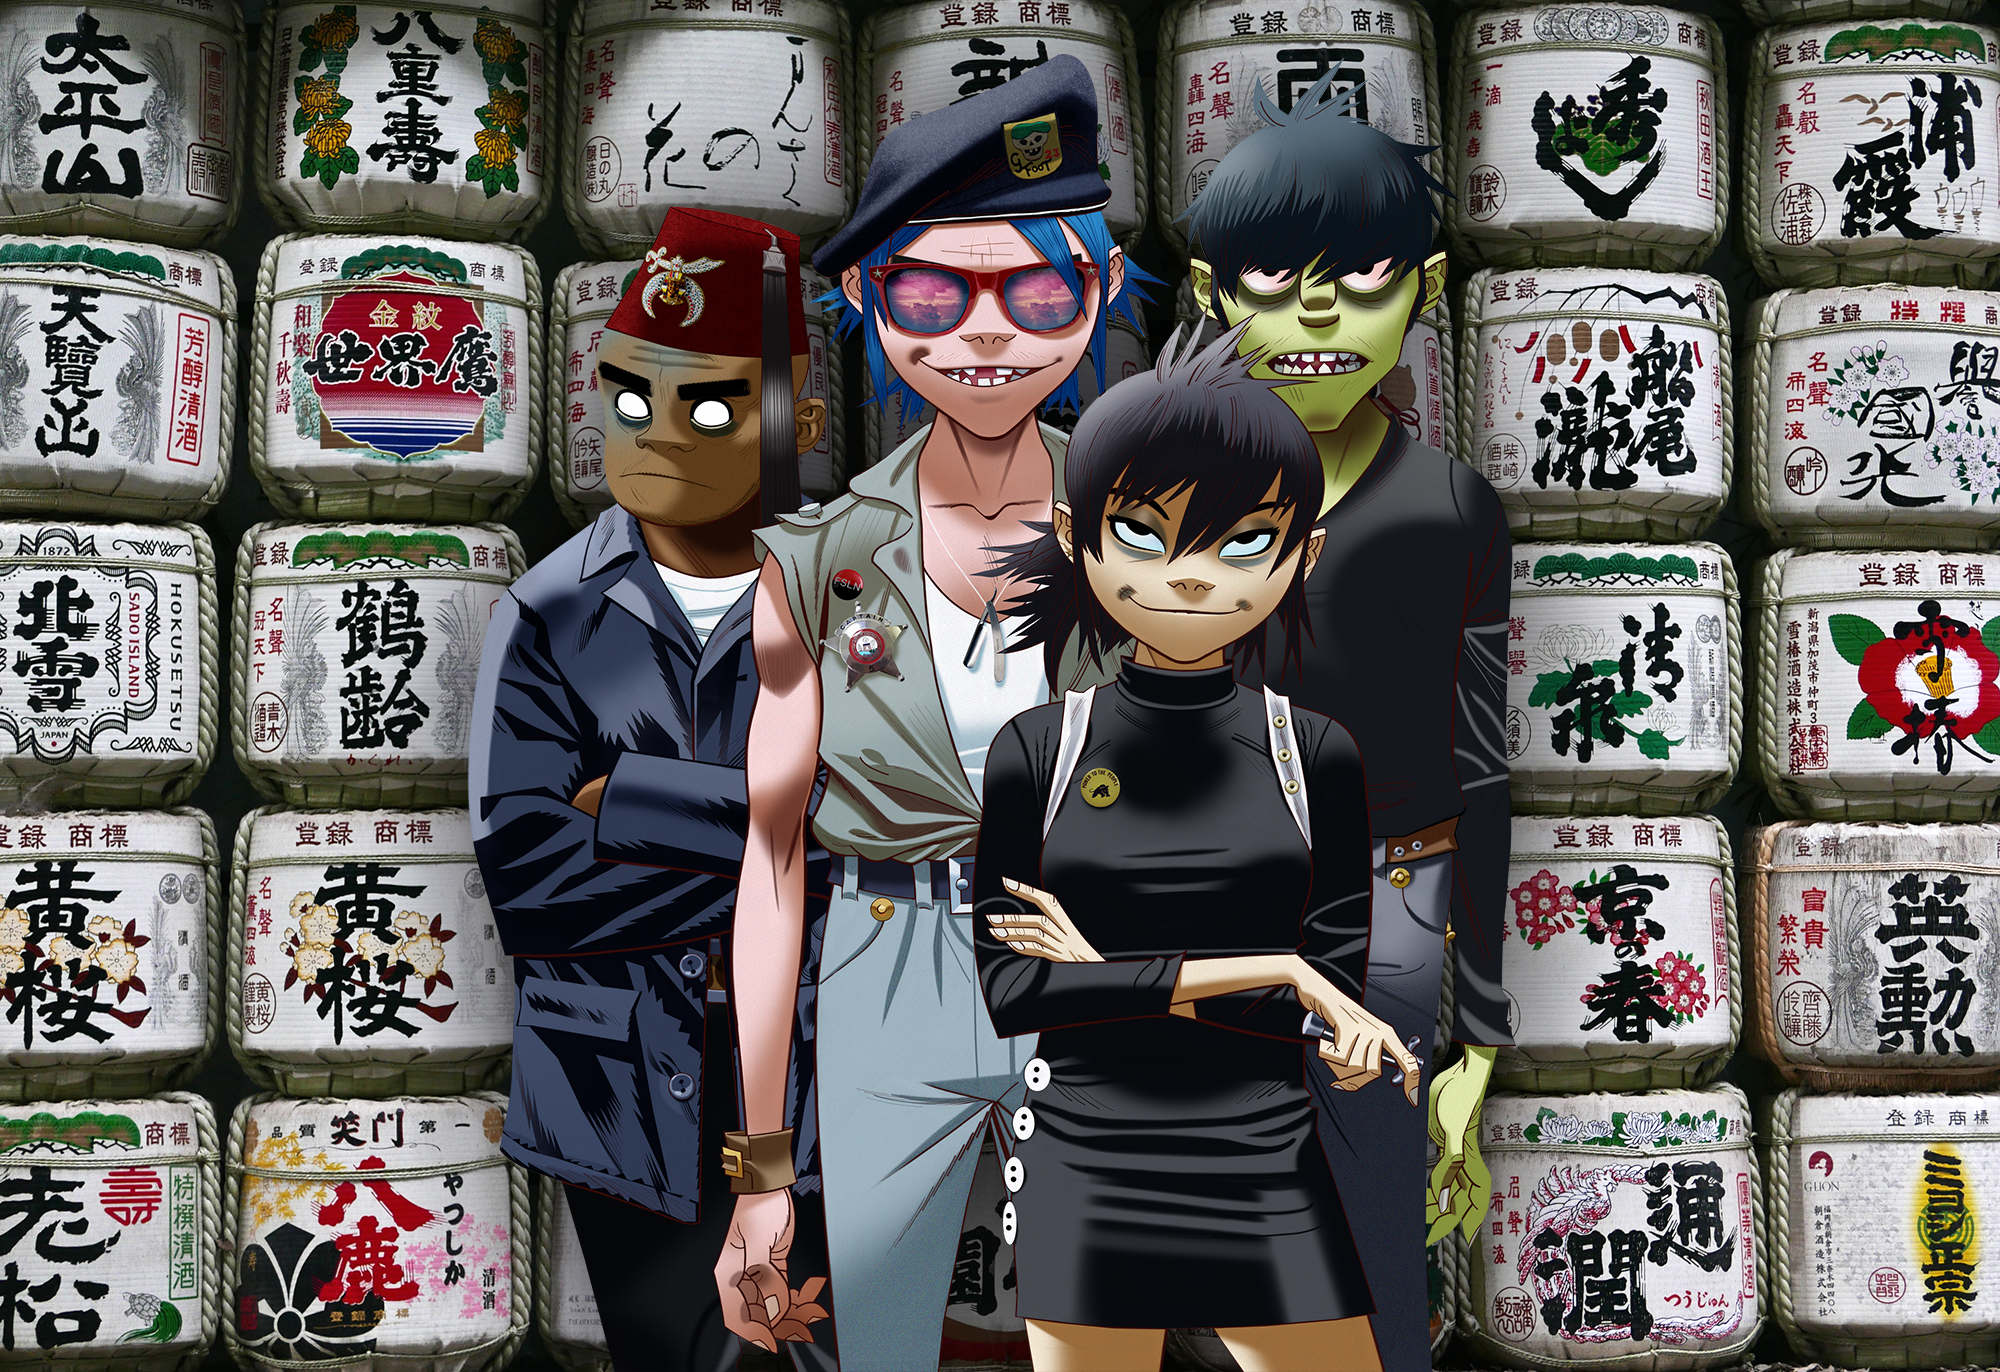 Tomorrow comes next week: Virtual band Gorillaz consists of (from left) Russel Hobbs, 2-D, Noodle and Murdoc Niccals.